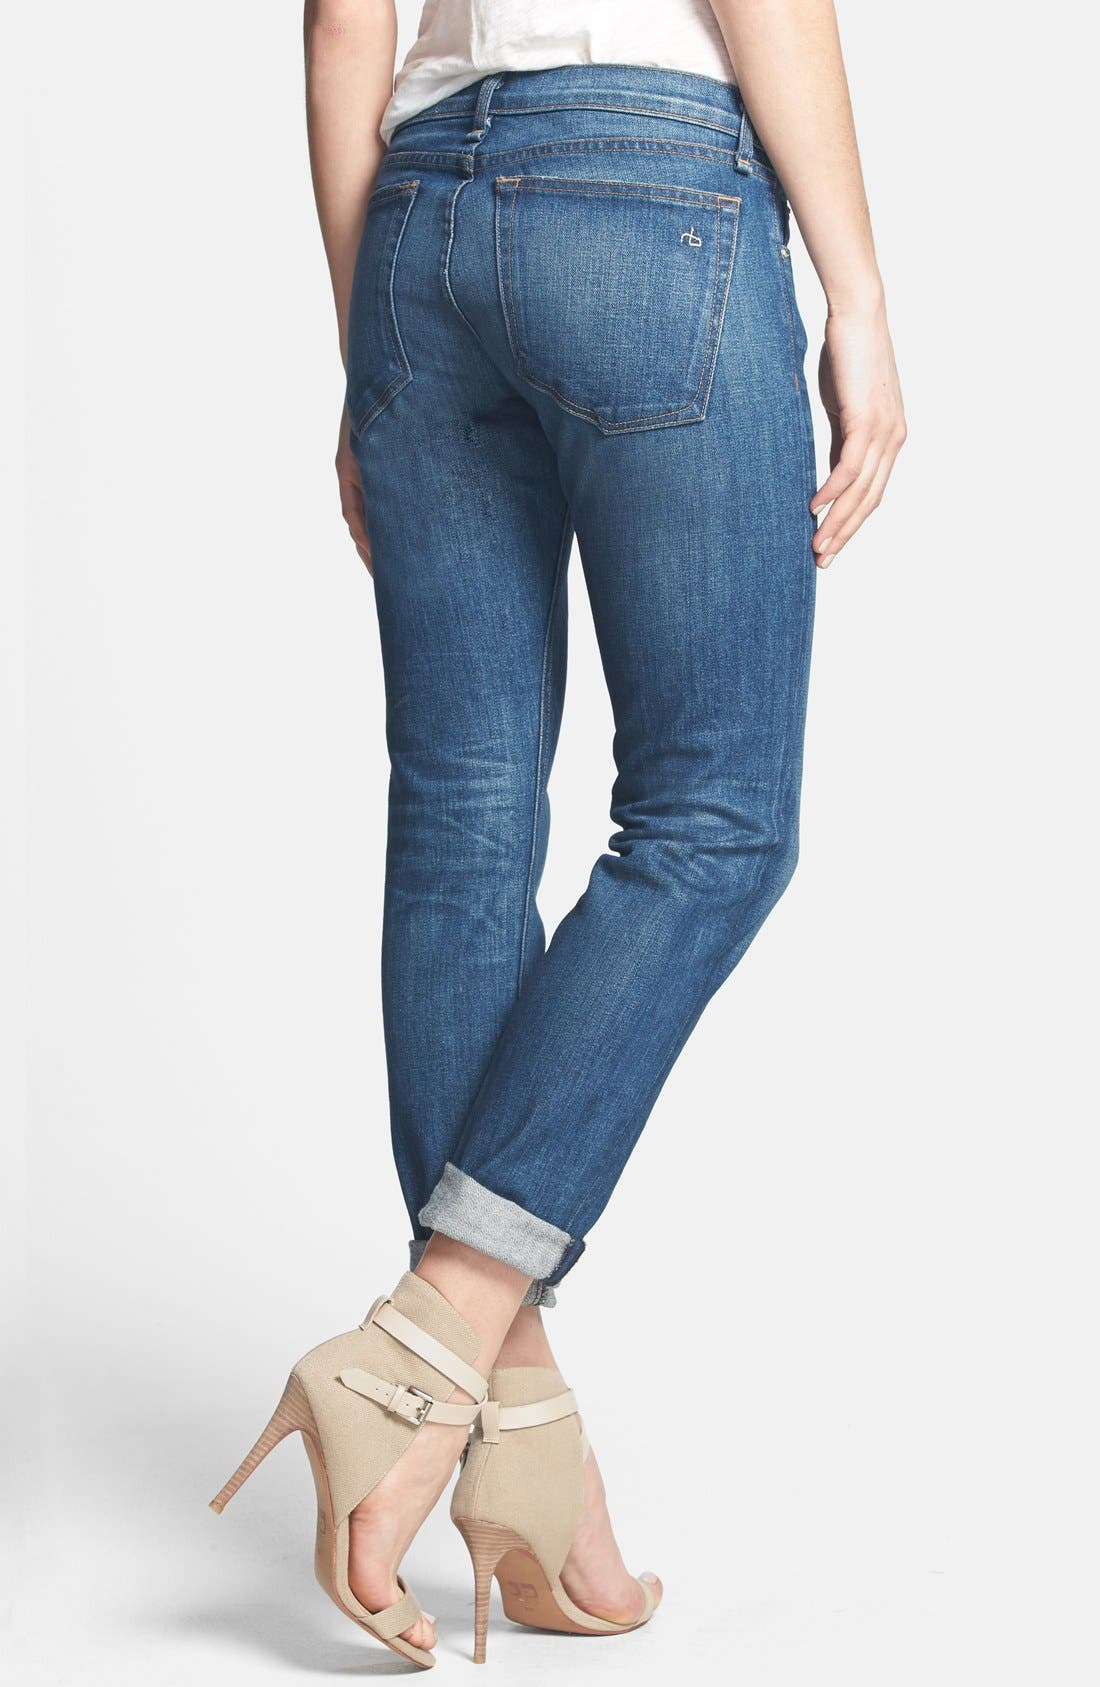 Alternate Image 2  - rag & bone/JEAN 'The Dre' Slim Fit Boyfriend Jeans (Bradford)